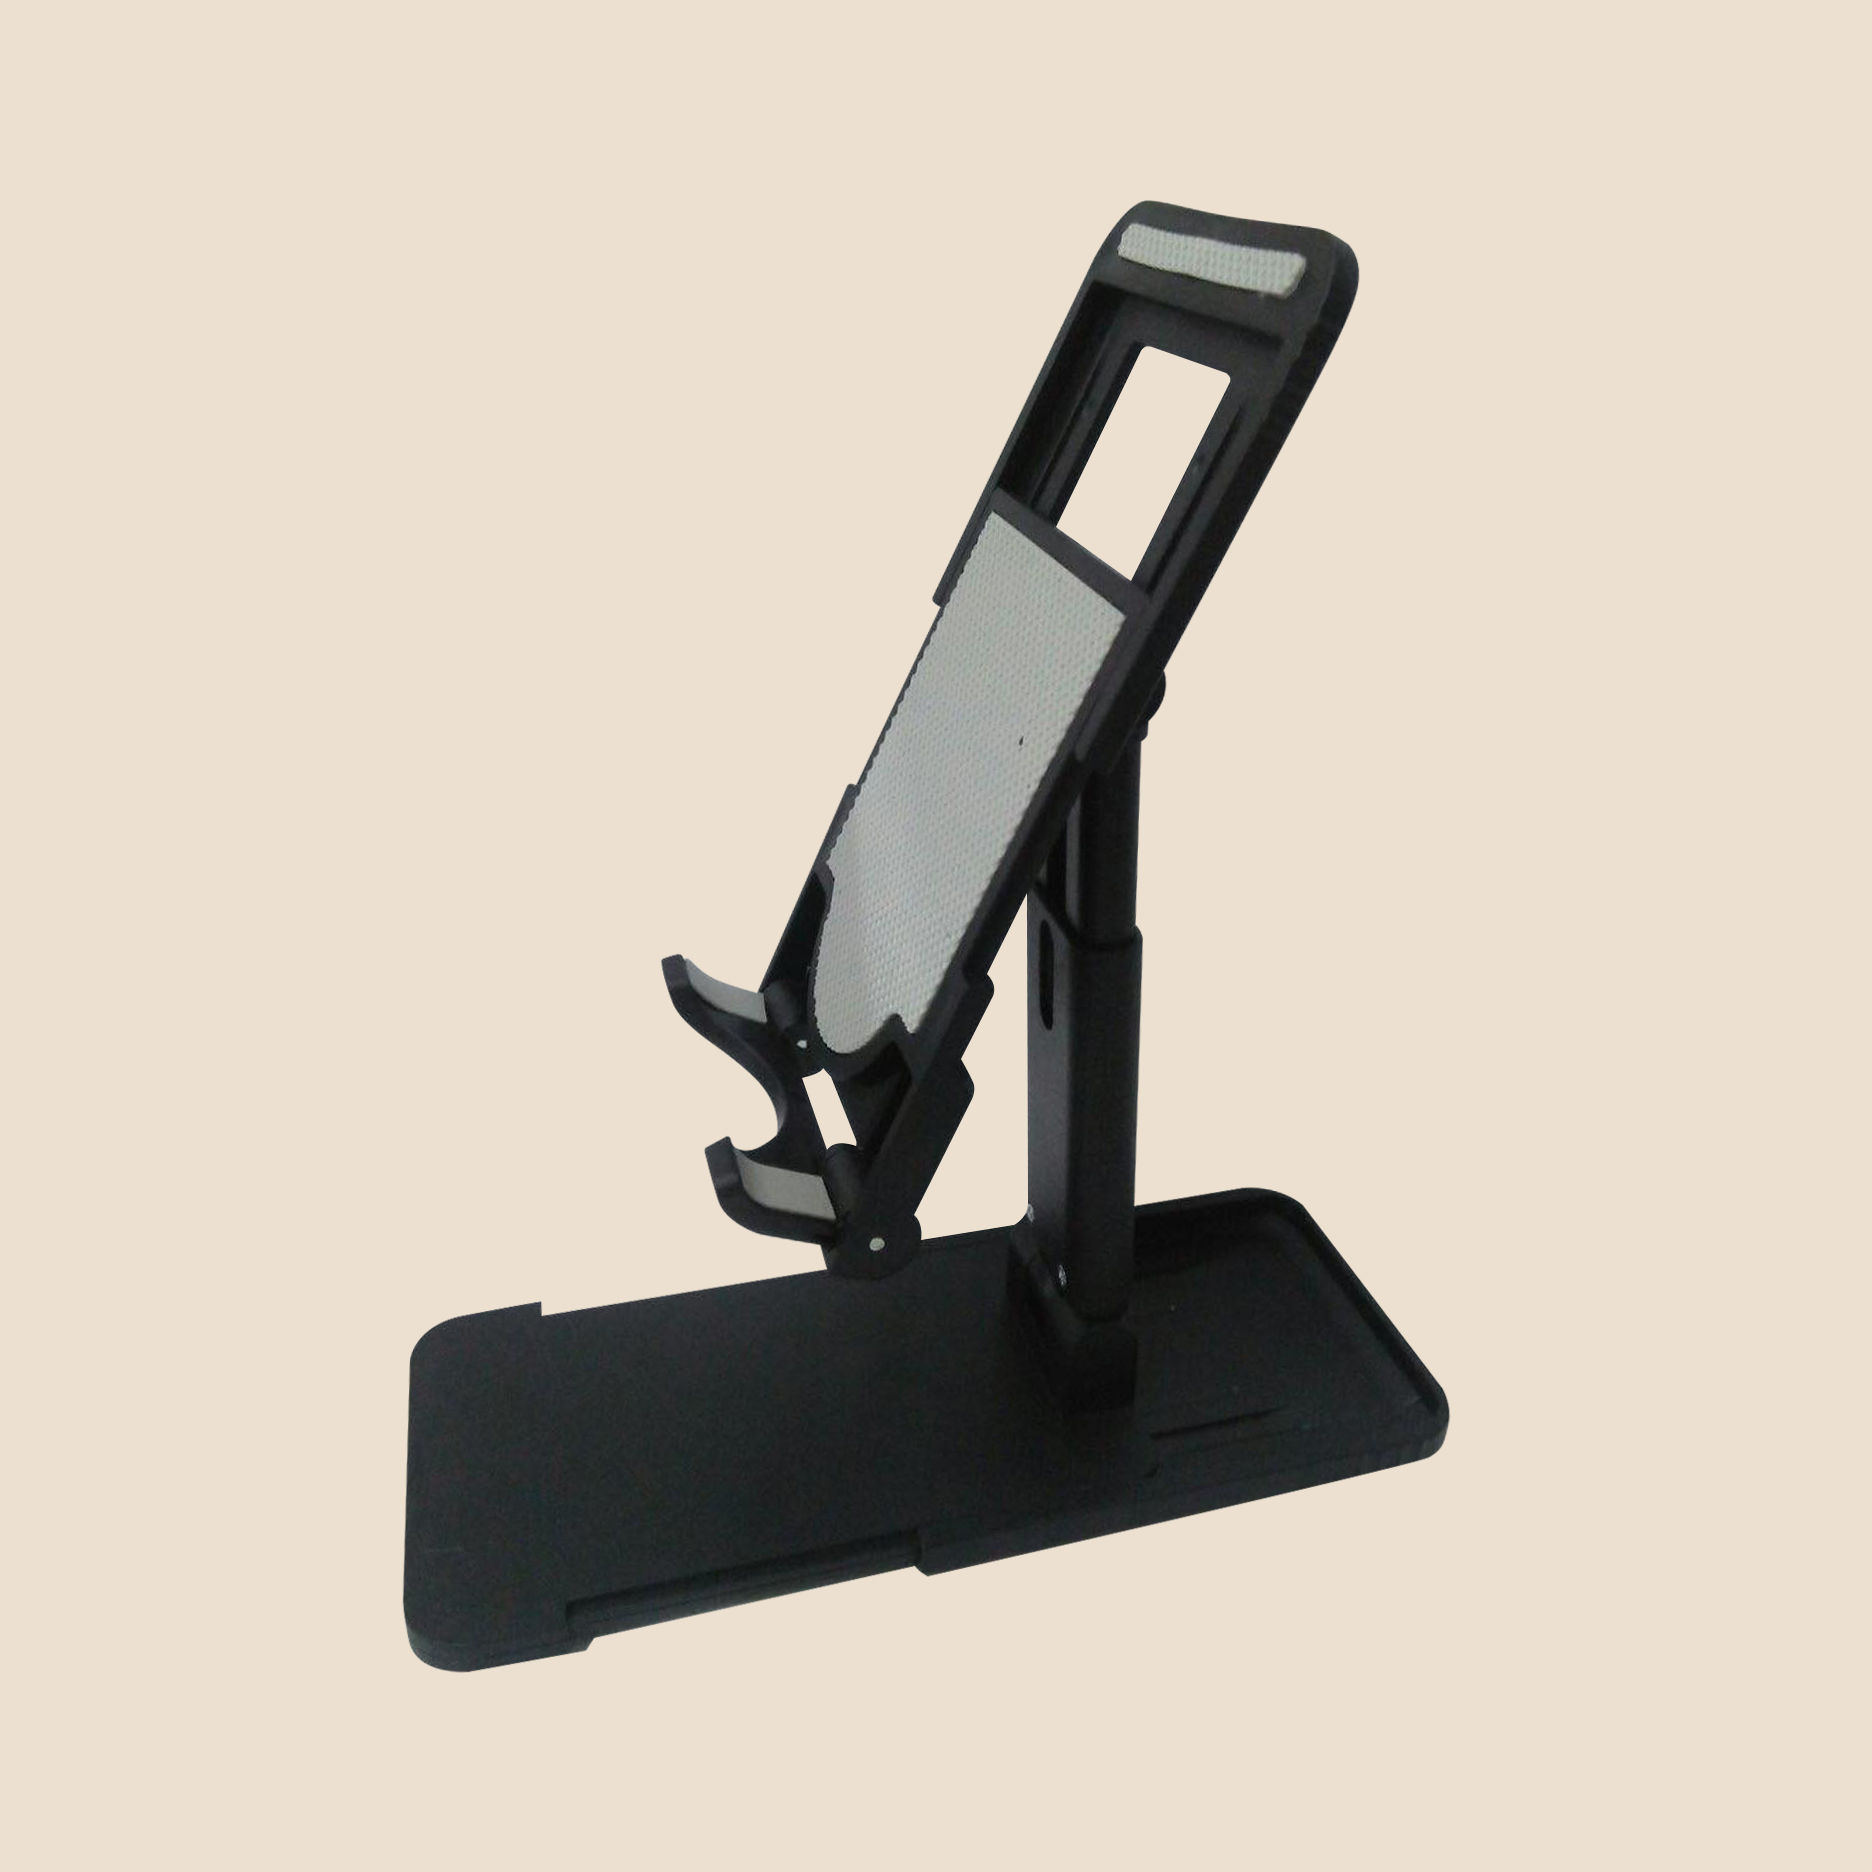 Mobile and Tablet Holder